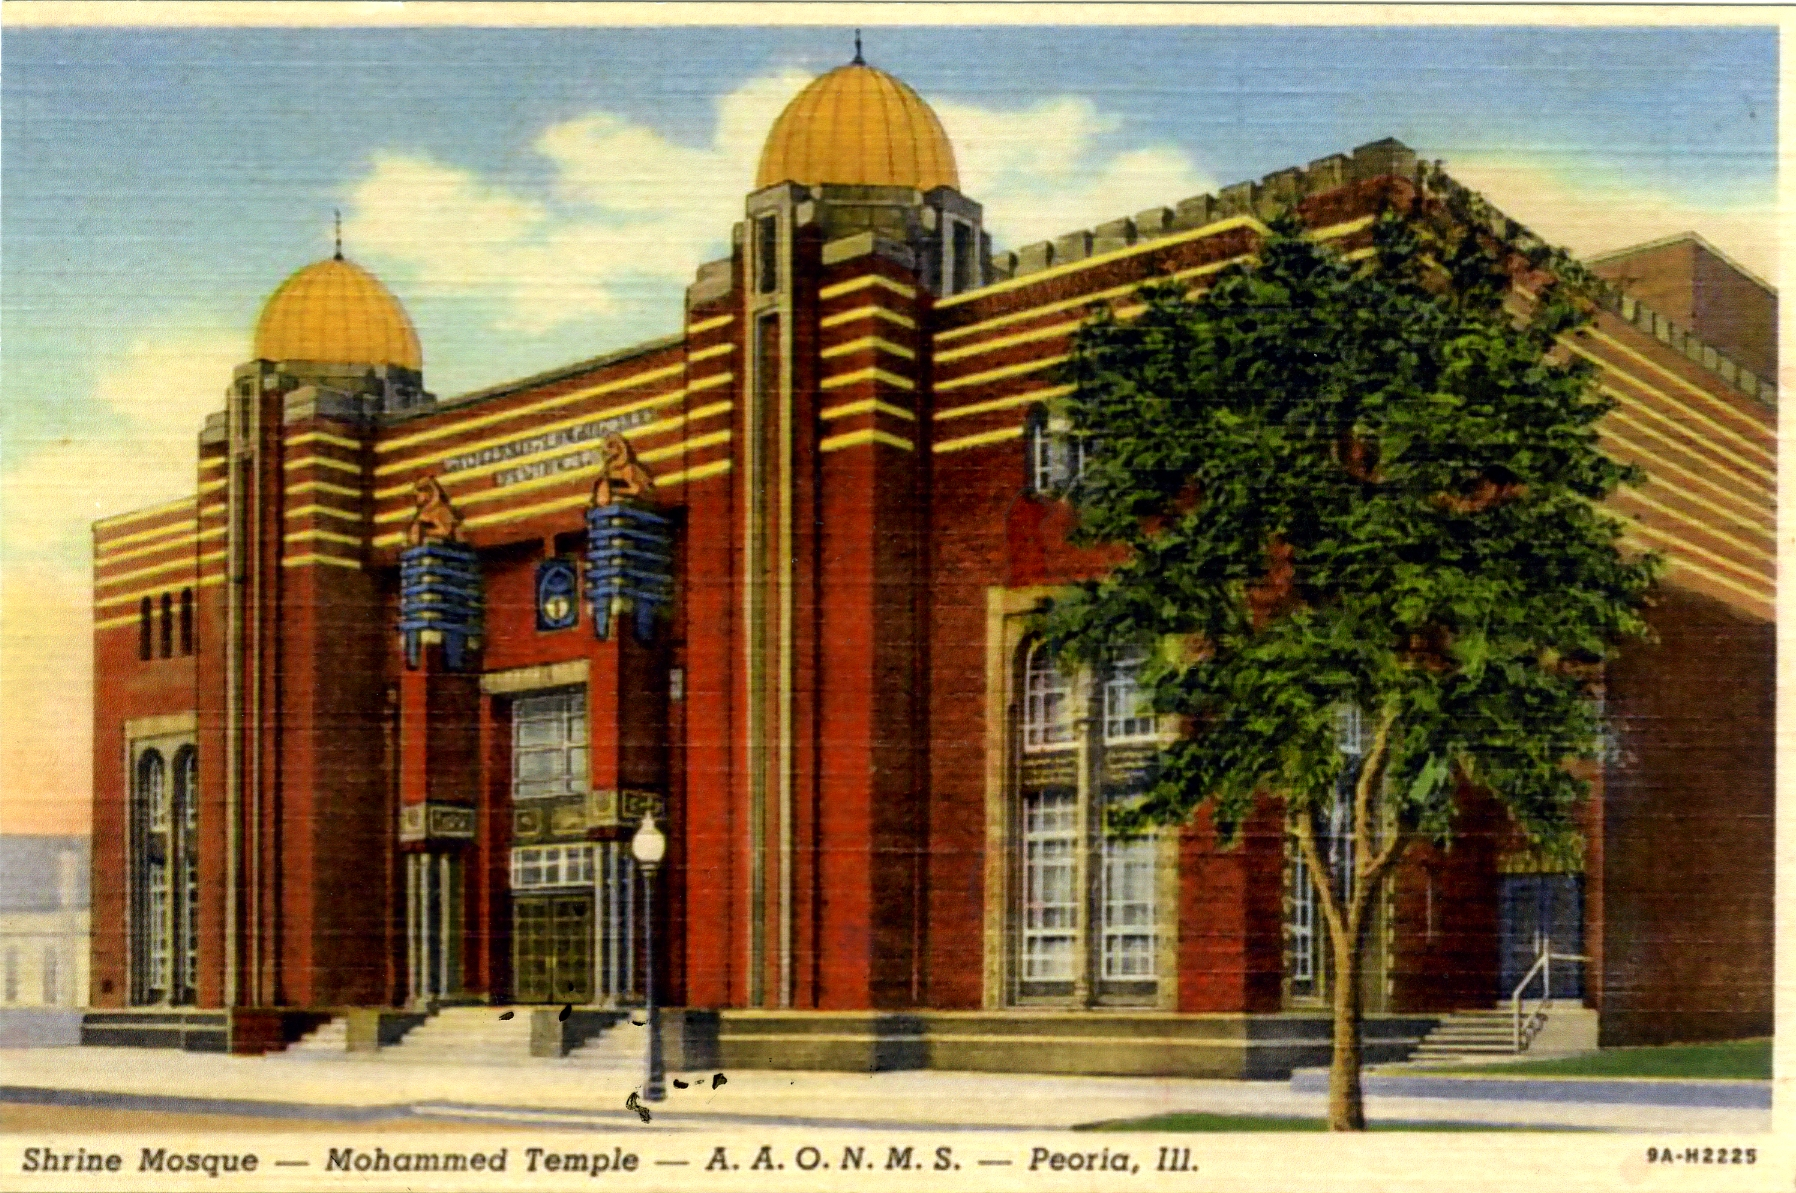 Color postcard of the Shrine Mosque-Mohammed Temple in Peoria Ill.